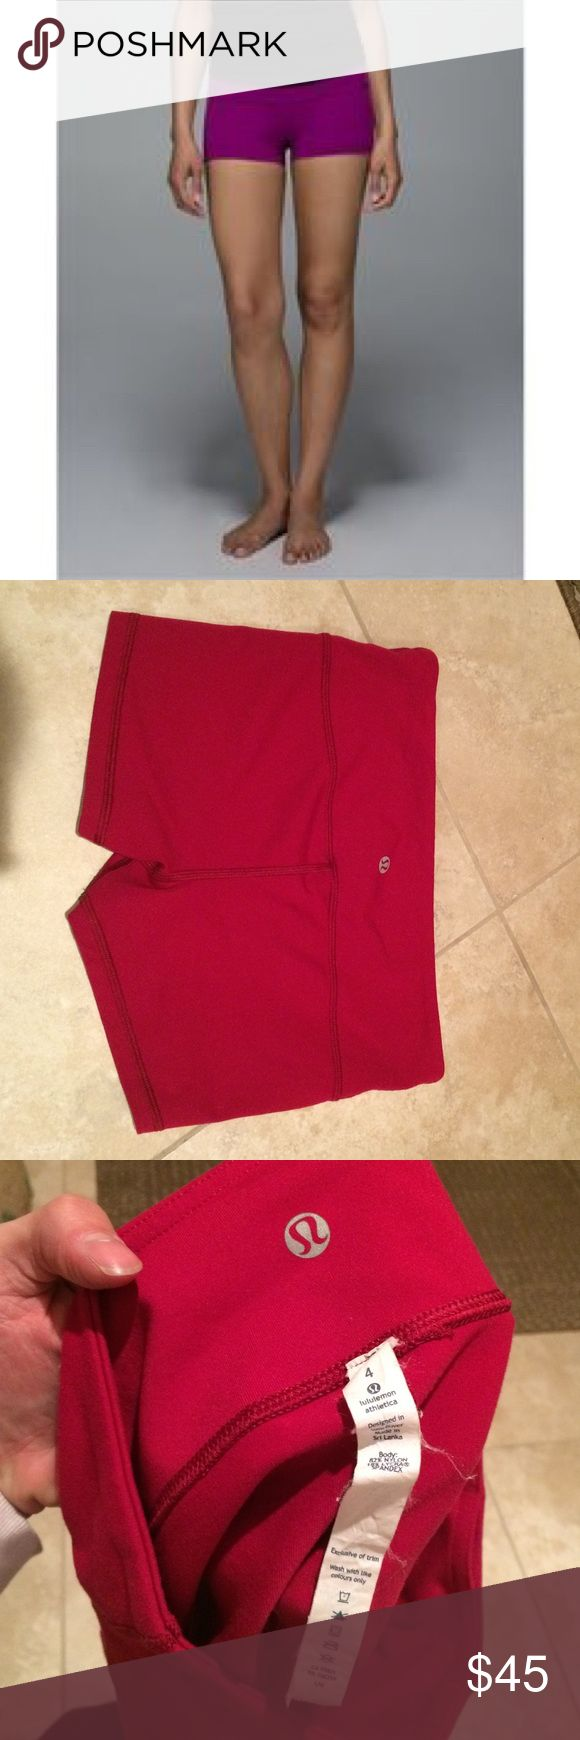 Lululemon roll down boogie shorts I couldn't get the color to show super accurately. (The lighting in my pics makes it look red, which its not, and the stock photo looks too purple-ish). I think the color is called regal plum. It's a fuchsia color. Guaranteed authentic Lululemon roll down boogie shorts. Very good preowned condition. Price on these is pretty firm! Color most accurate in last pic. lululemon athletica Shorts